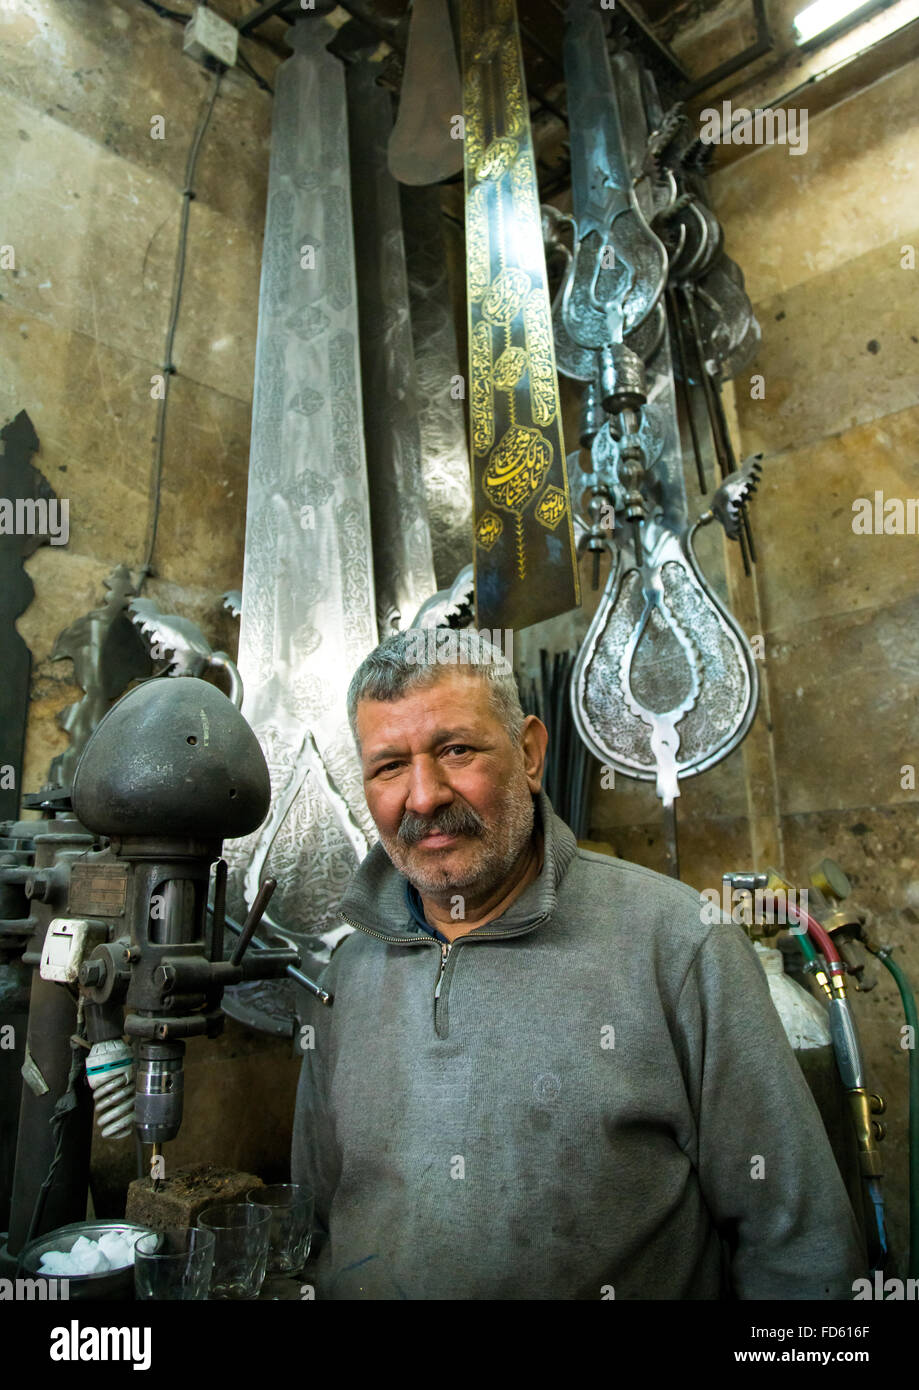 alam master safar fooladgar in his workshop, Central district, Tehran, Iran - Stock Image